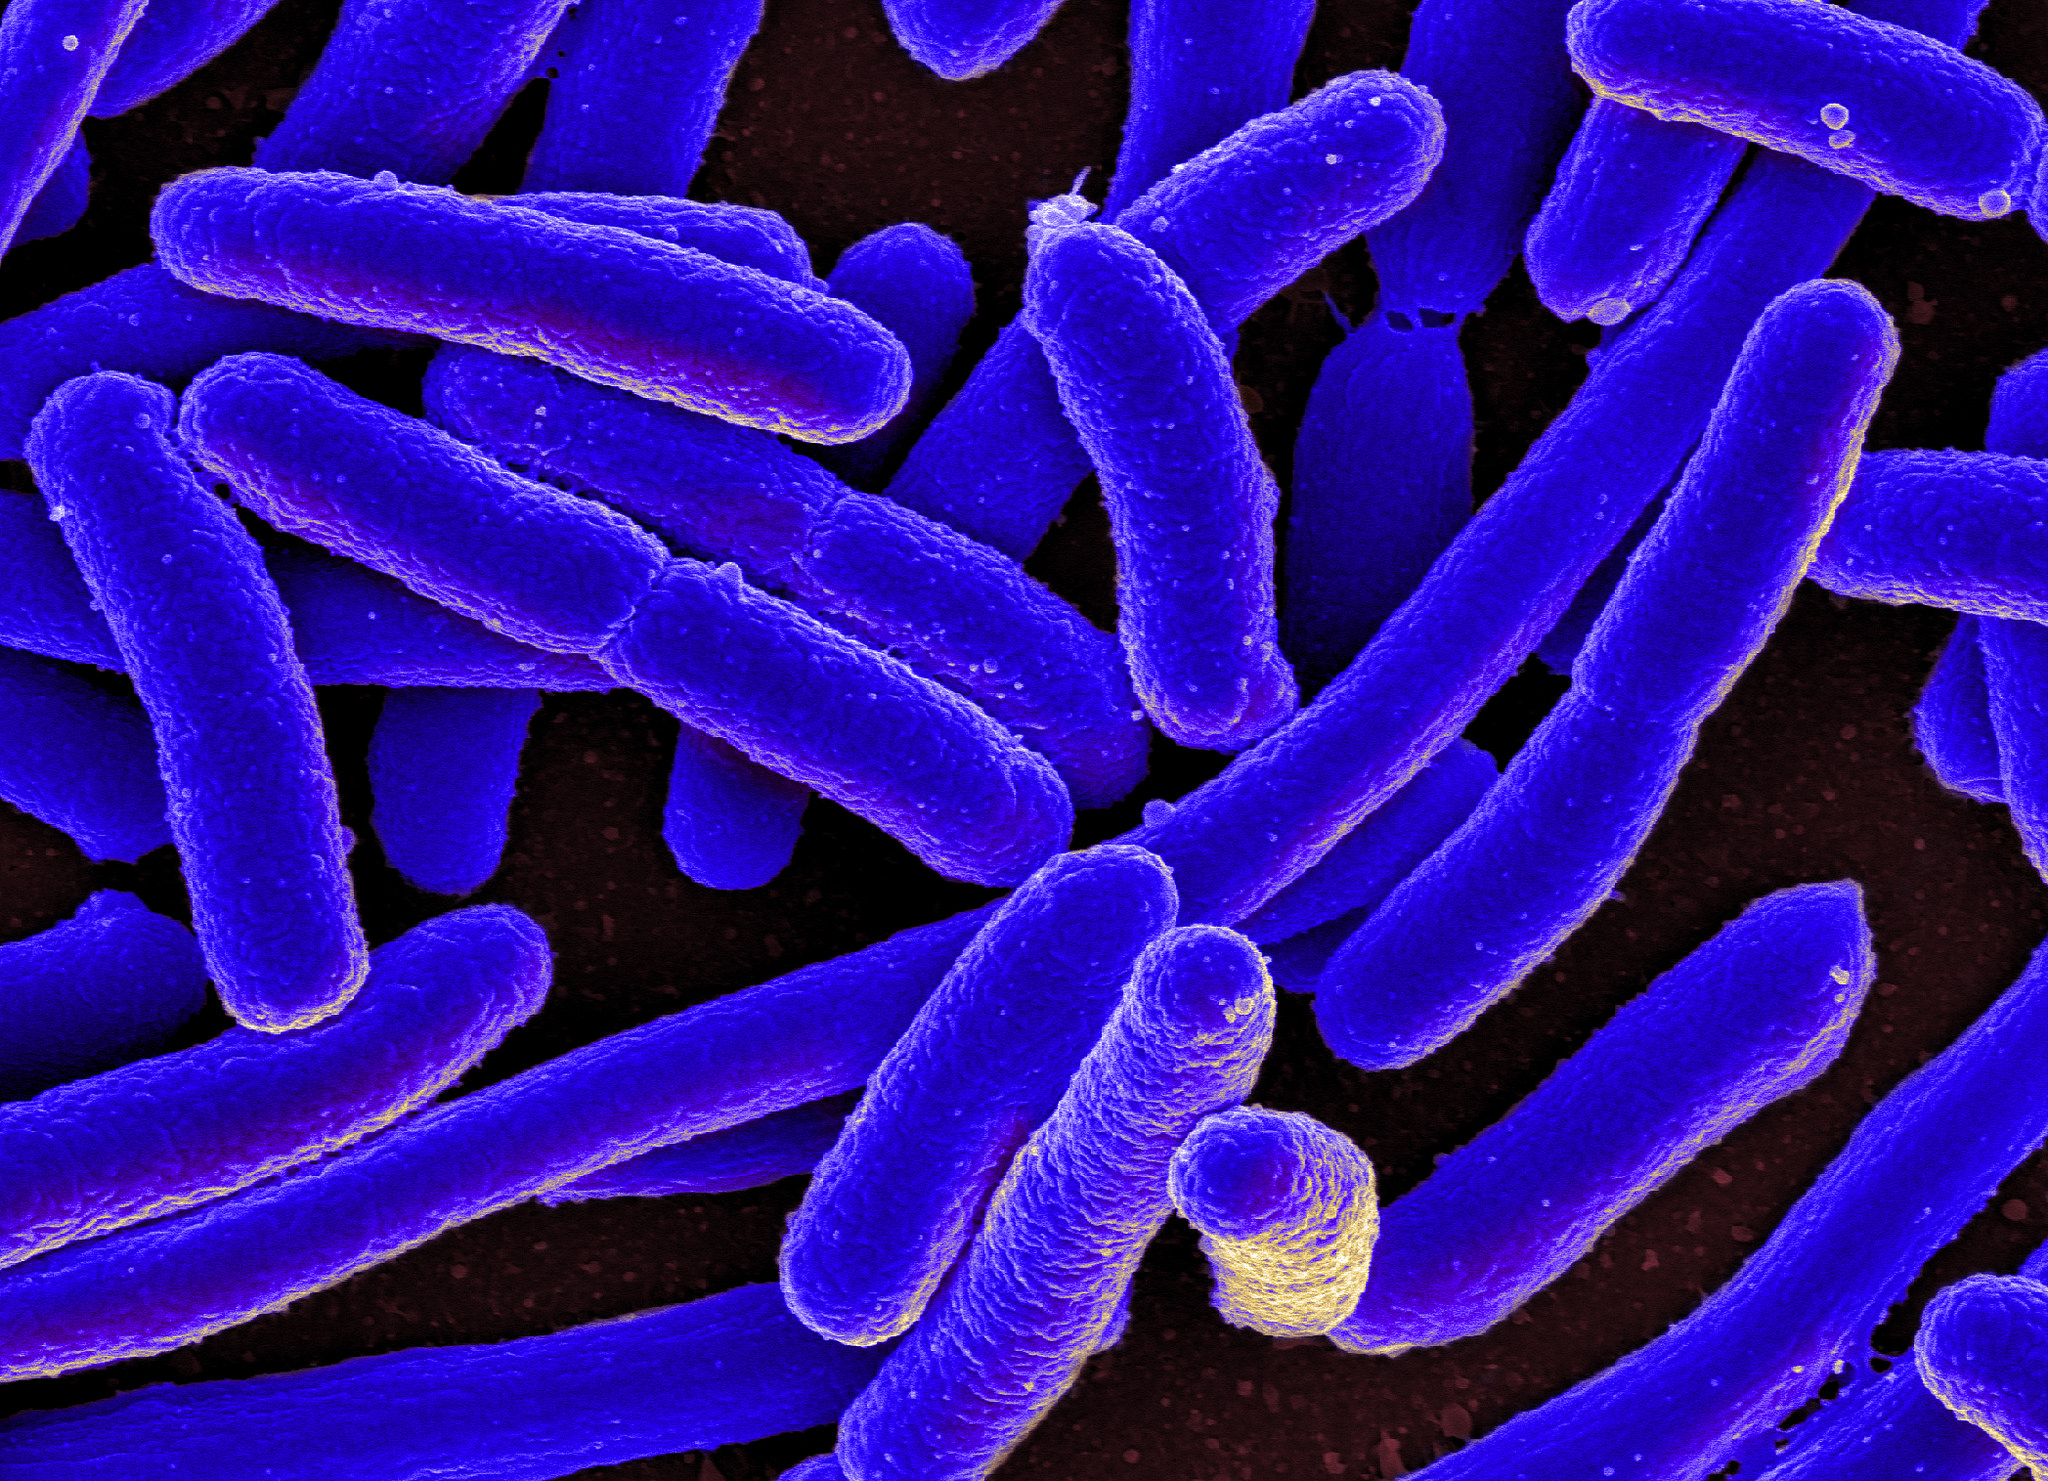 e coli on bathroom surfaces The e coli came from fecal bacteria, which can survive on hands and surfaces for hours researchers from the london school of hygiene & tropical medicine and queen mary, university of london.